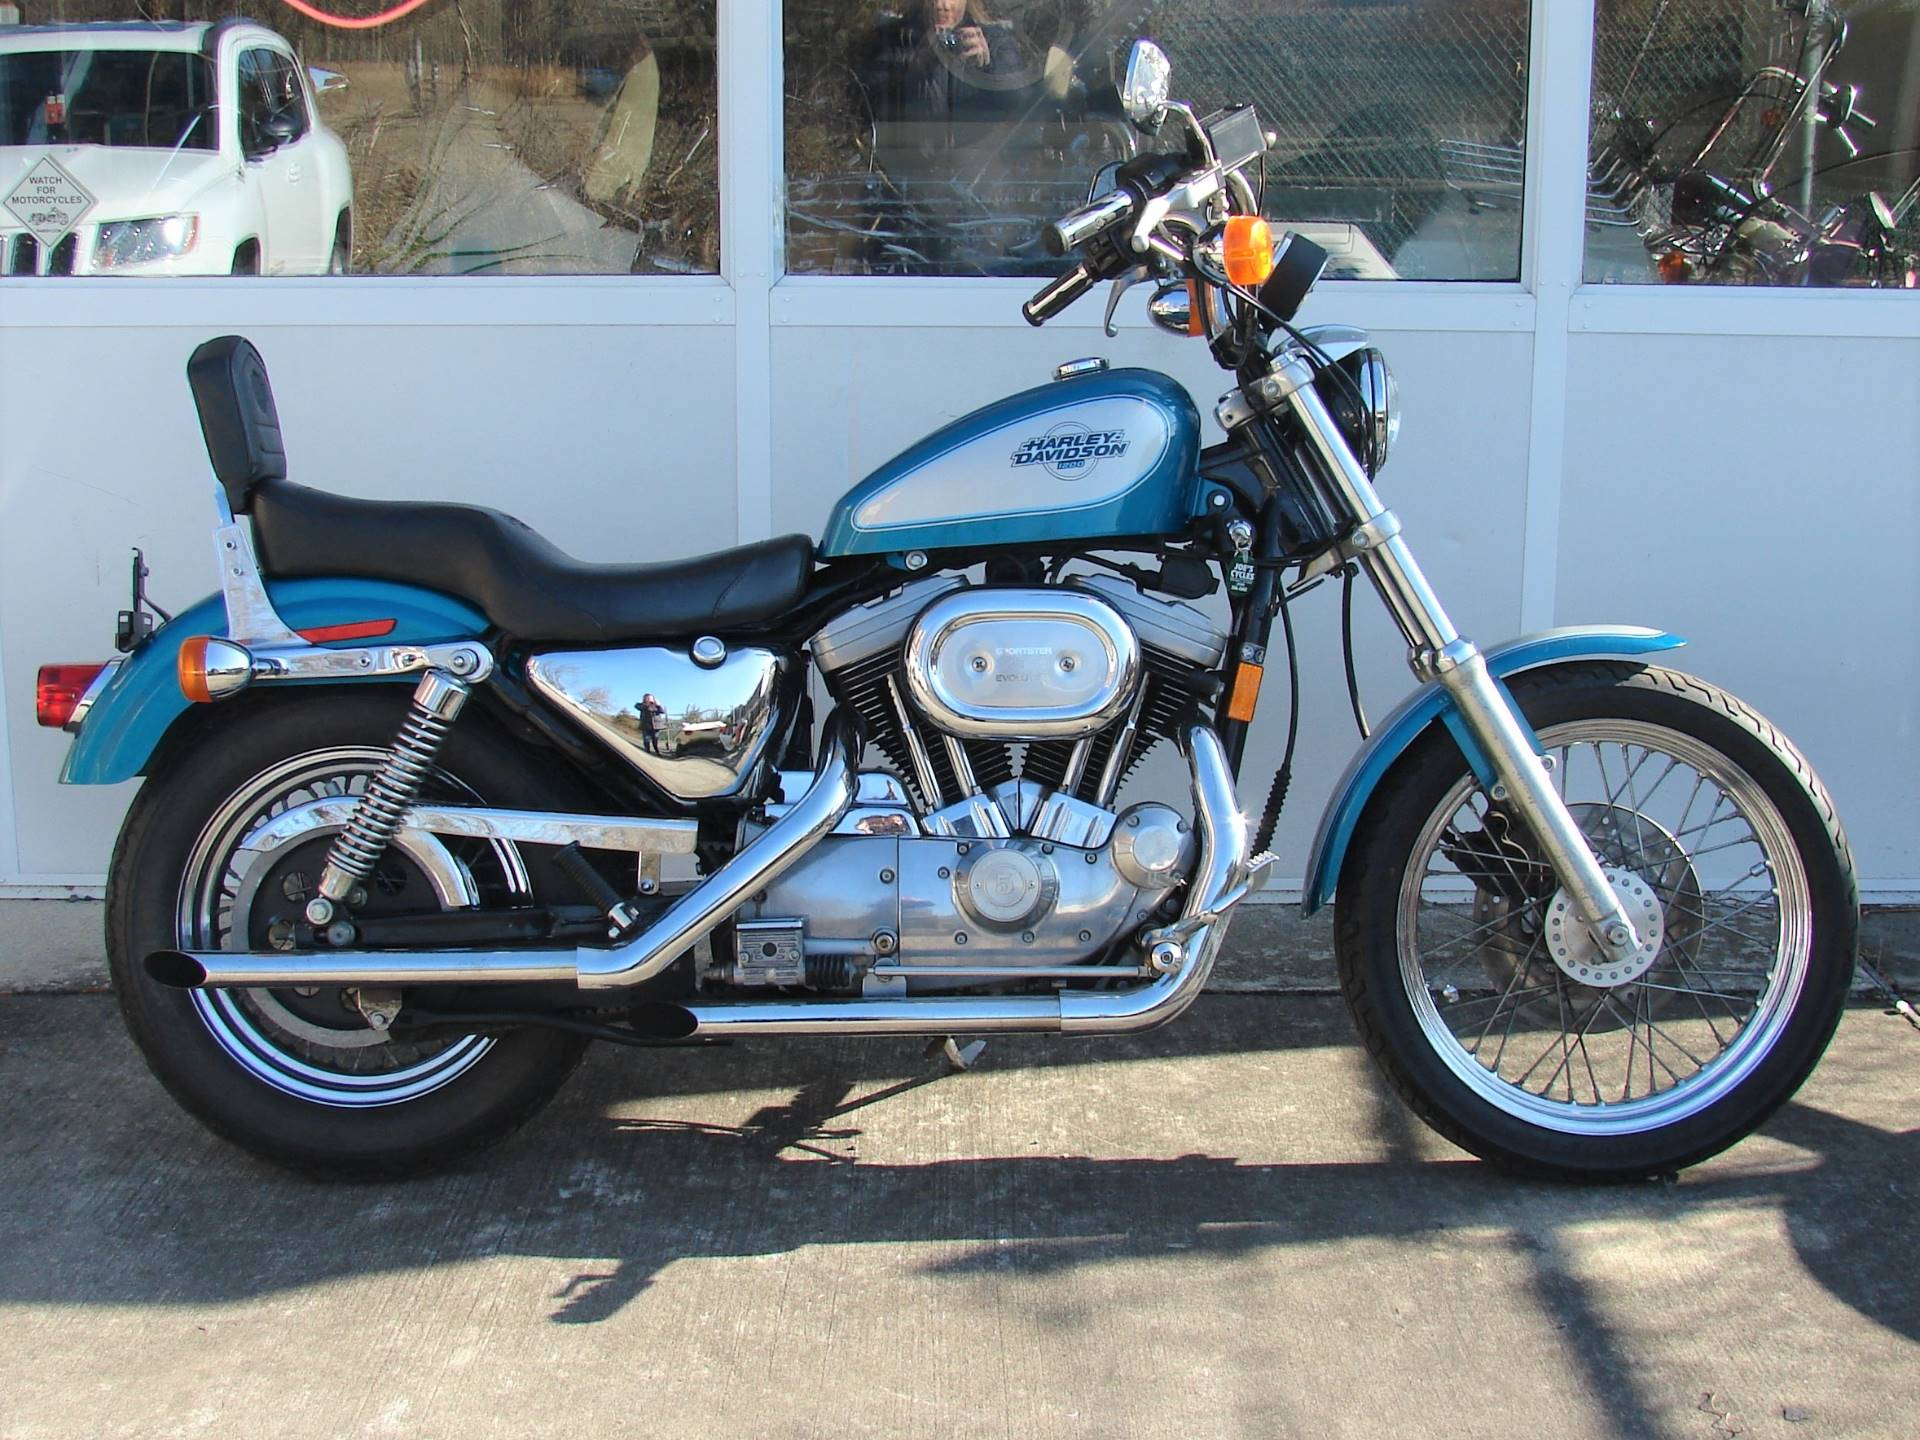 1995 Harley-Davidson 1200 Sportster  (Teal Blue and Silver) in Williamstown, New Jersey - Photo 13